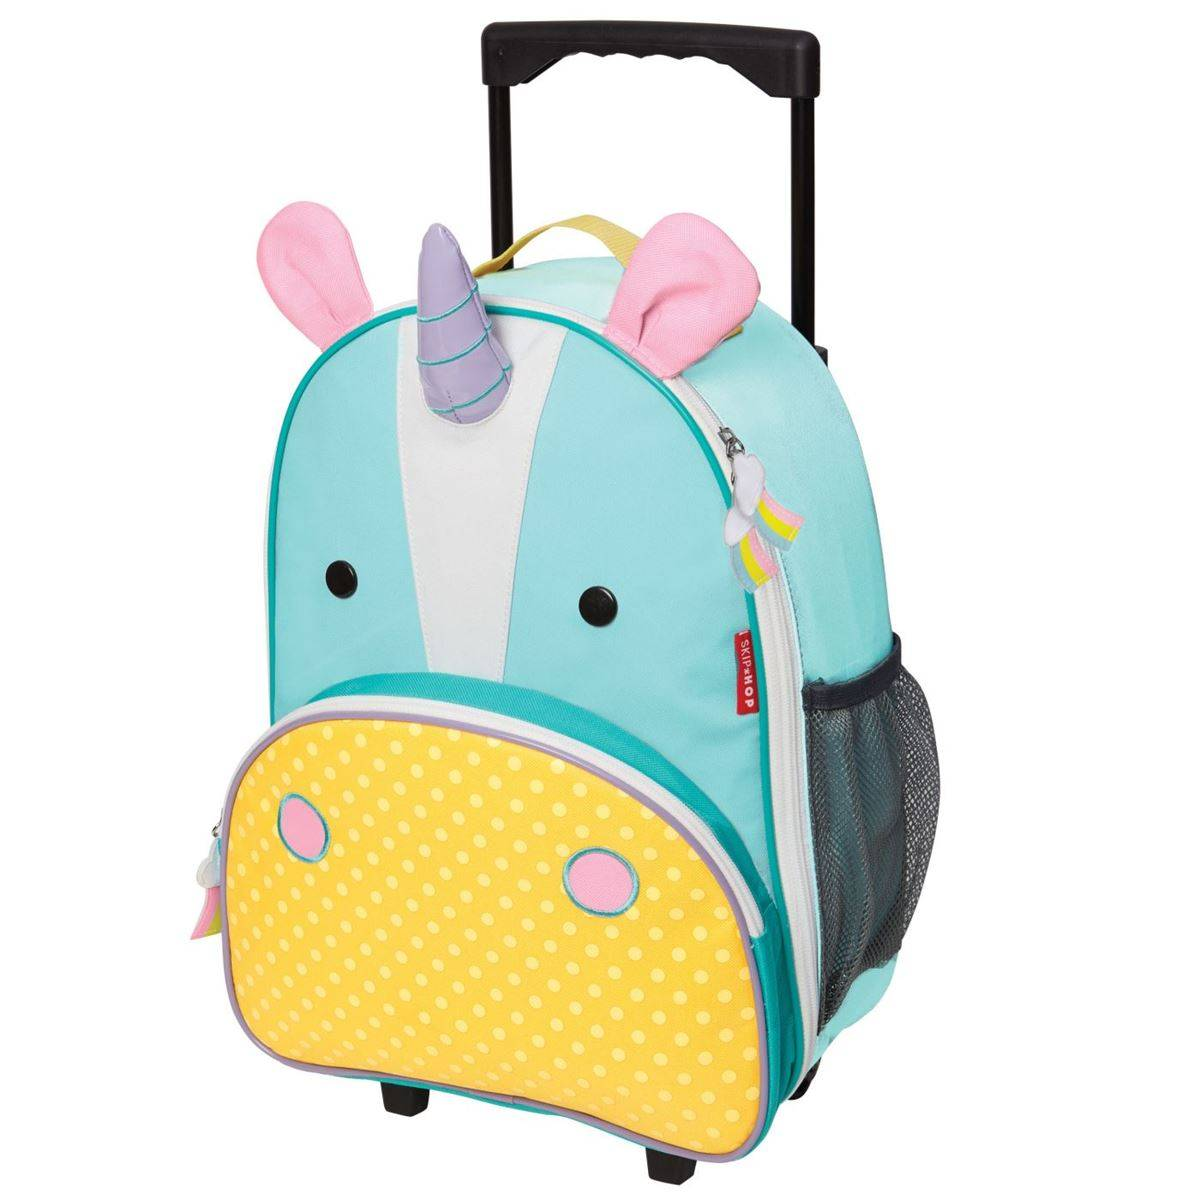 SkipHop Skip Hop Trillekoffert, Zoo Luggage, Unicorn